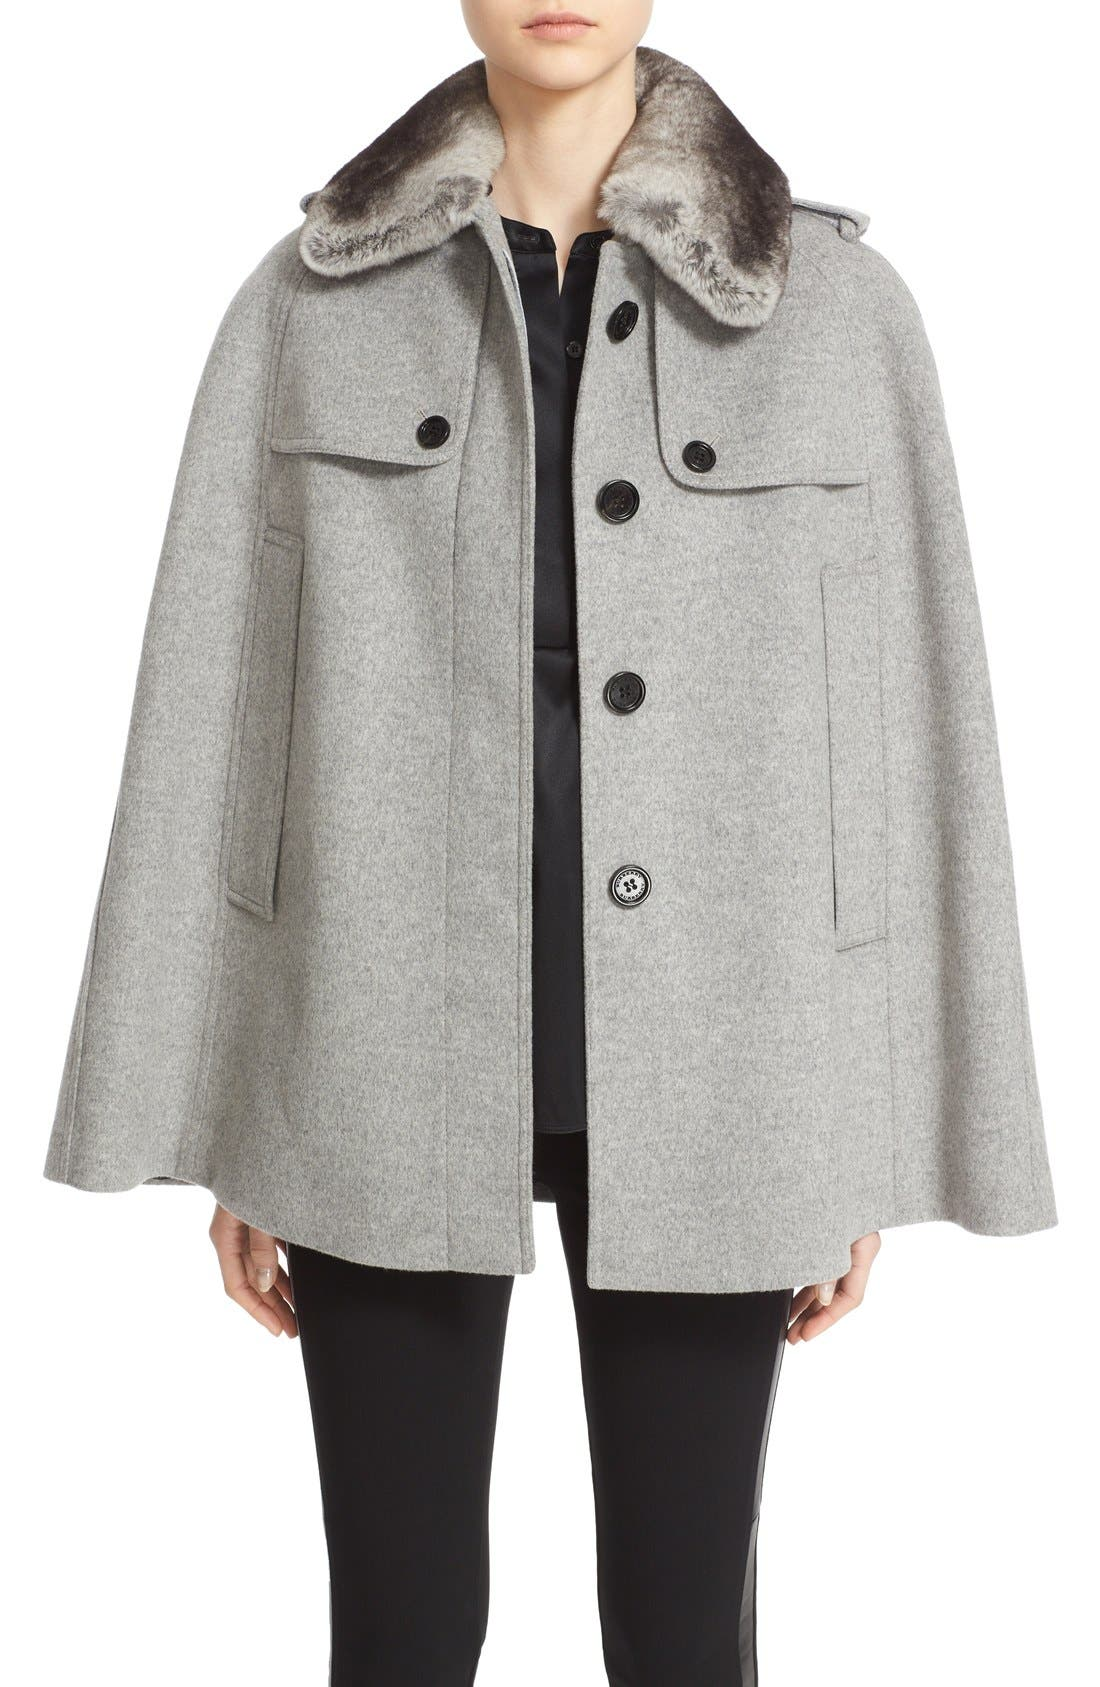 Main Image - Burberry 'Wolseley' Wool & Cashmere Trench Cape with Removable Genuine Rabbit Fur Collar